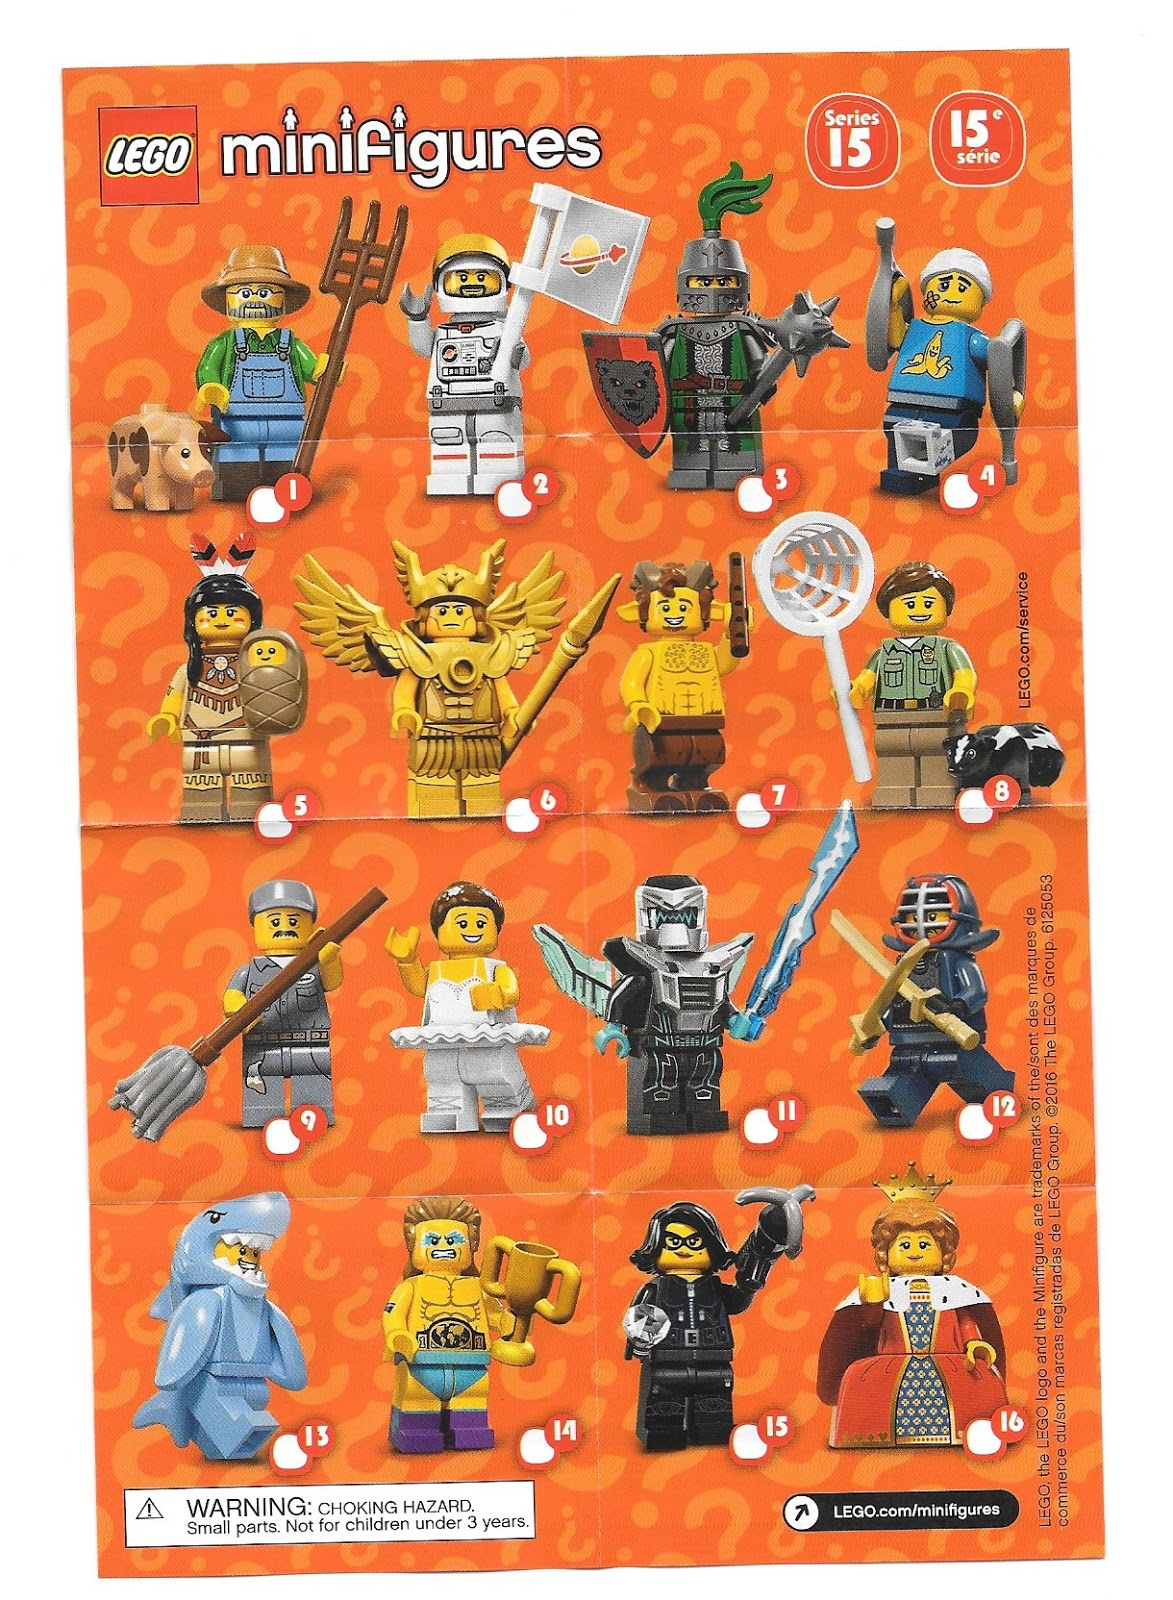 Playing With Bricks Lego Series 15 Minifigures Review